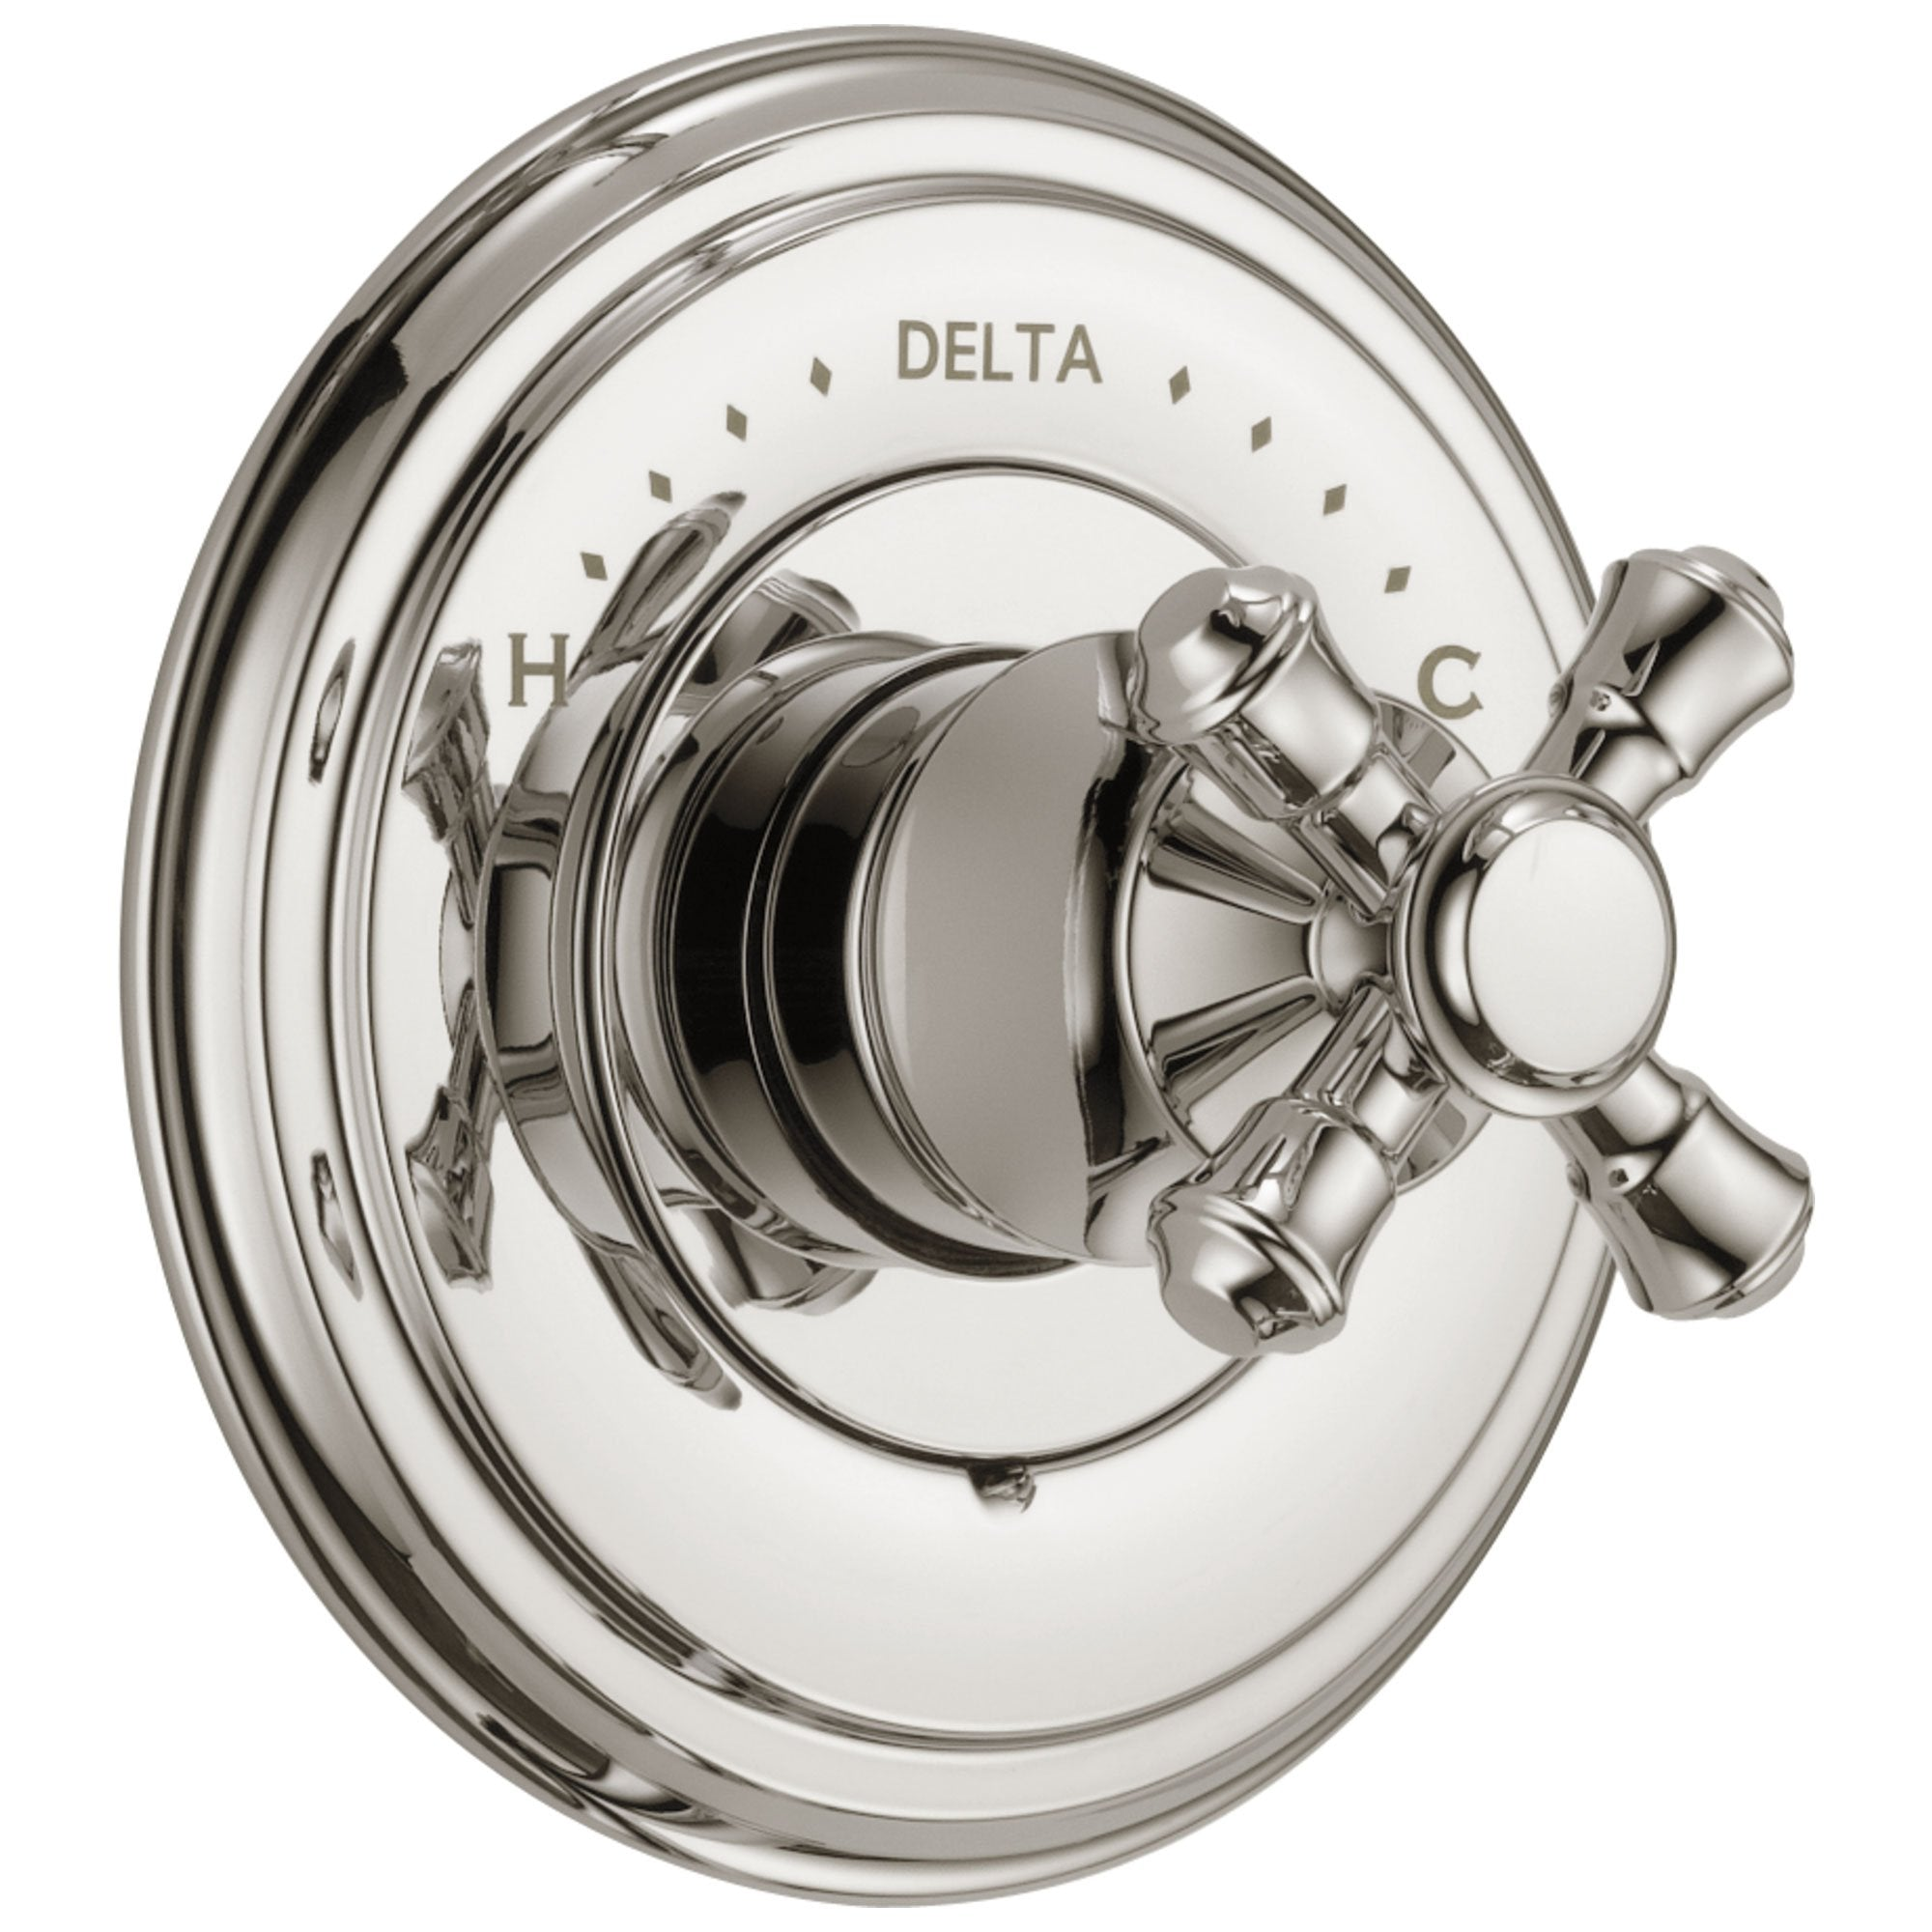 Delta Cassidy Collection Polished Nickel Monitor 14 Series Shower Valve Control Only INCLUDES Single Cross Handle and Rough-in Valve without Stops D1859V